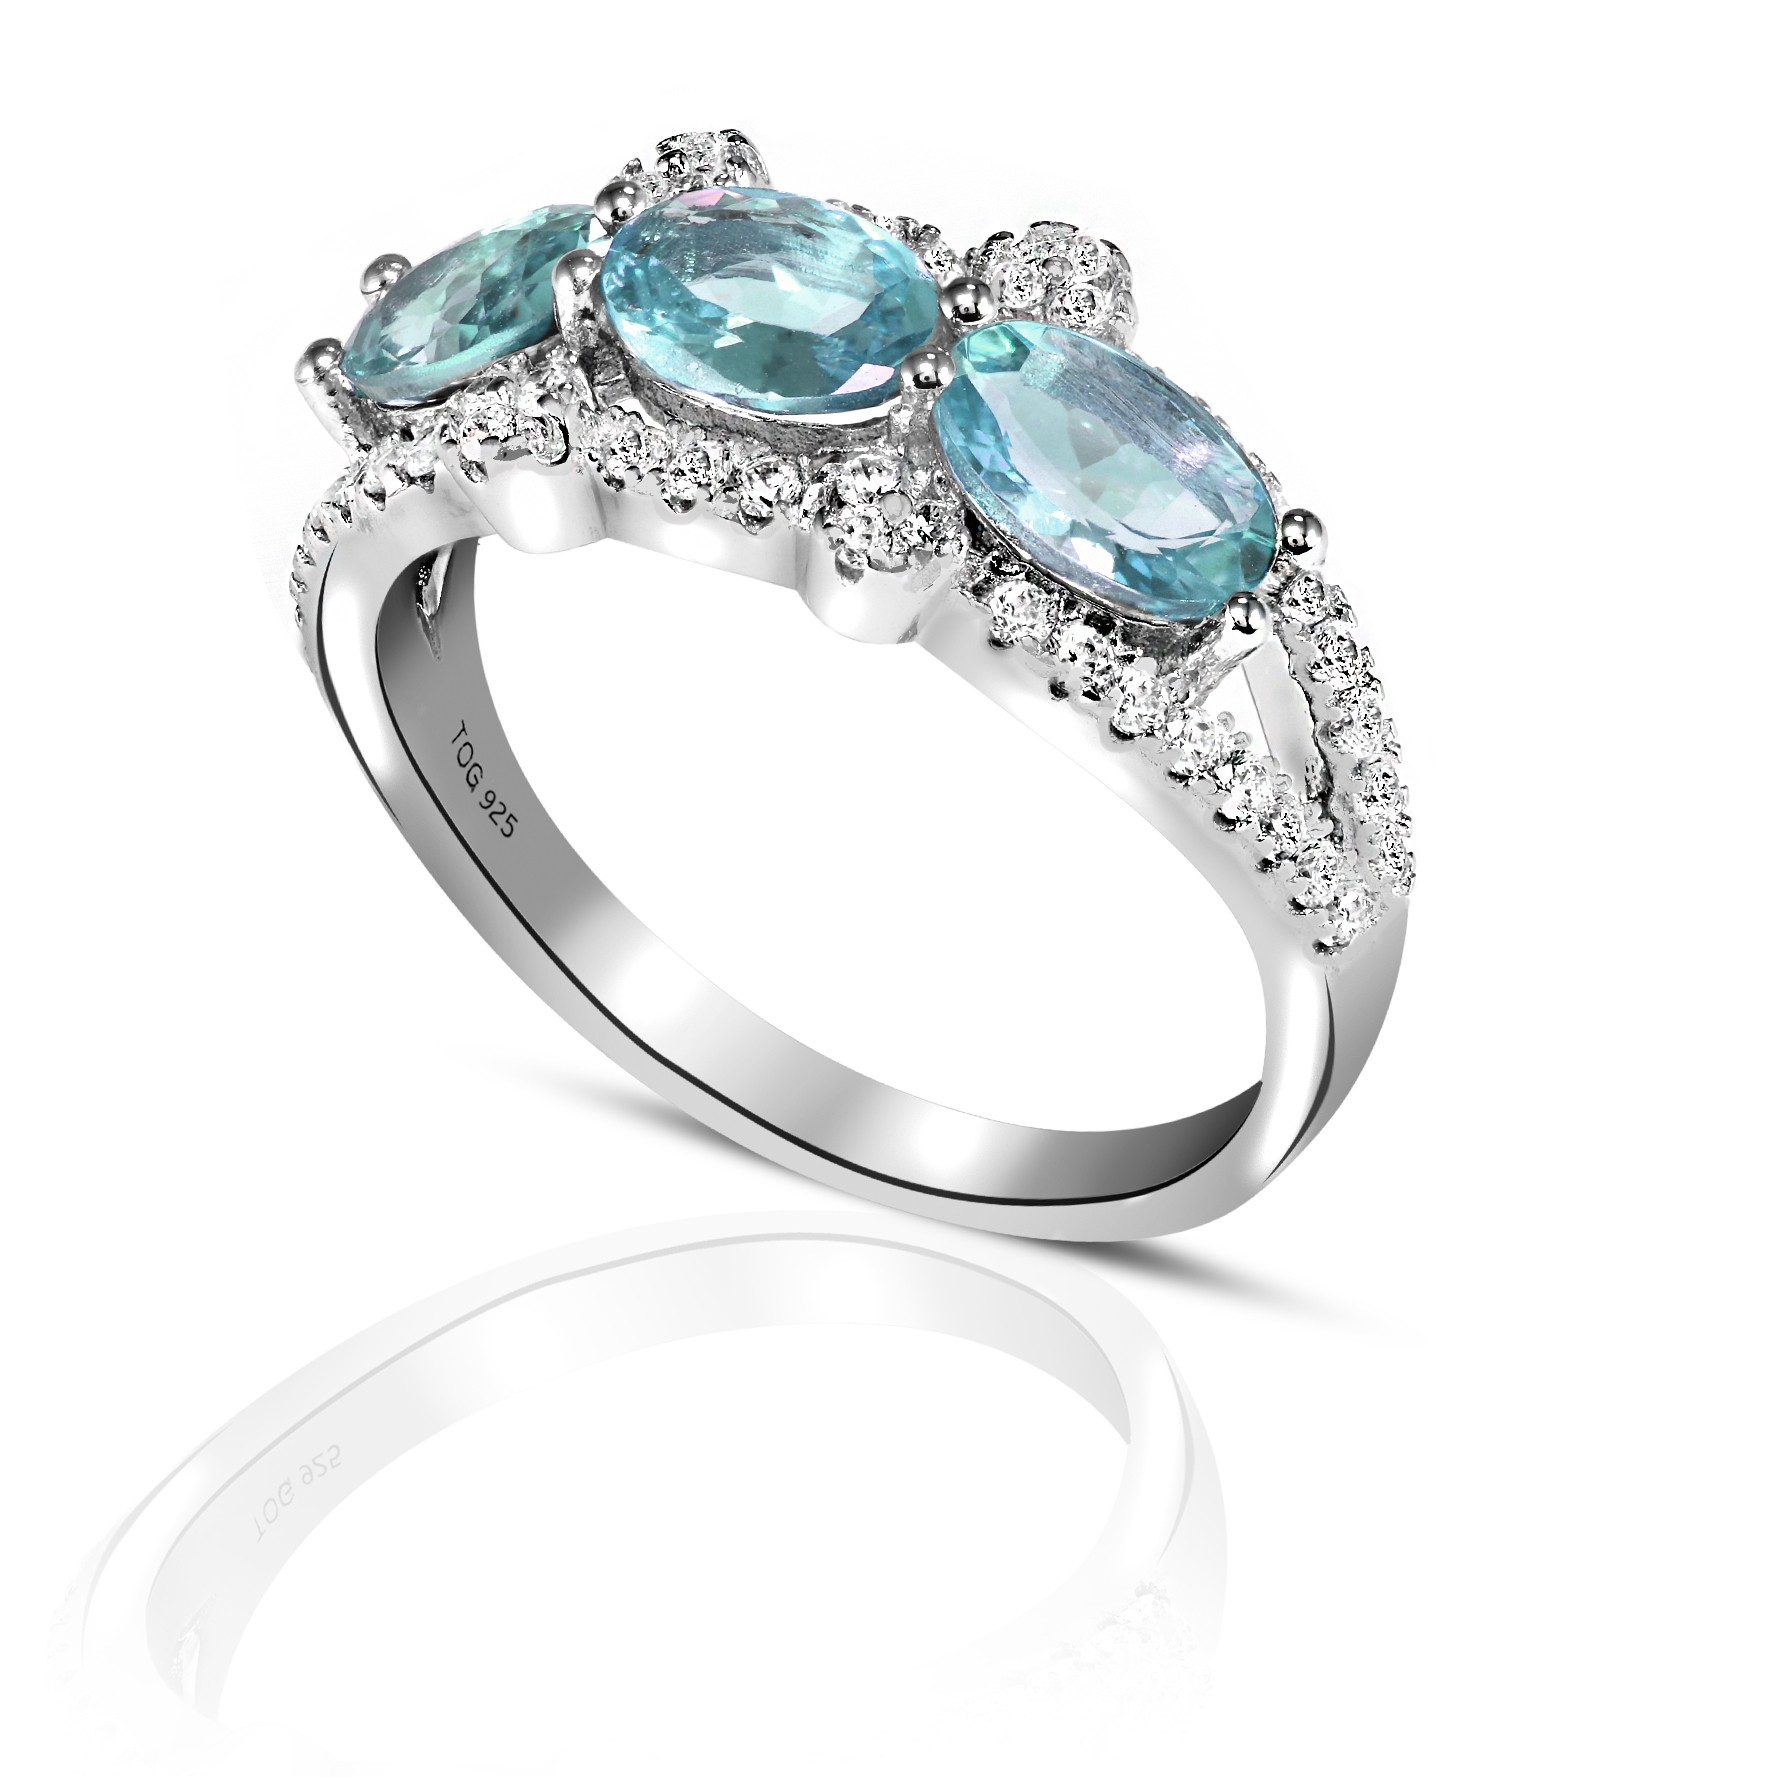 Lovely Aquamarine and White Topaz Ring set in Sterling Silver